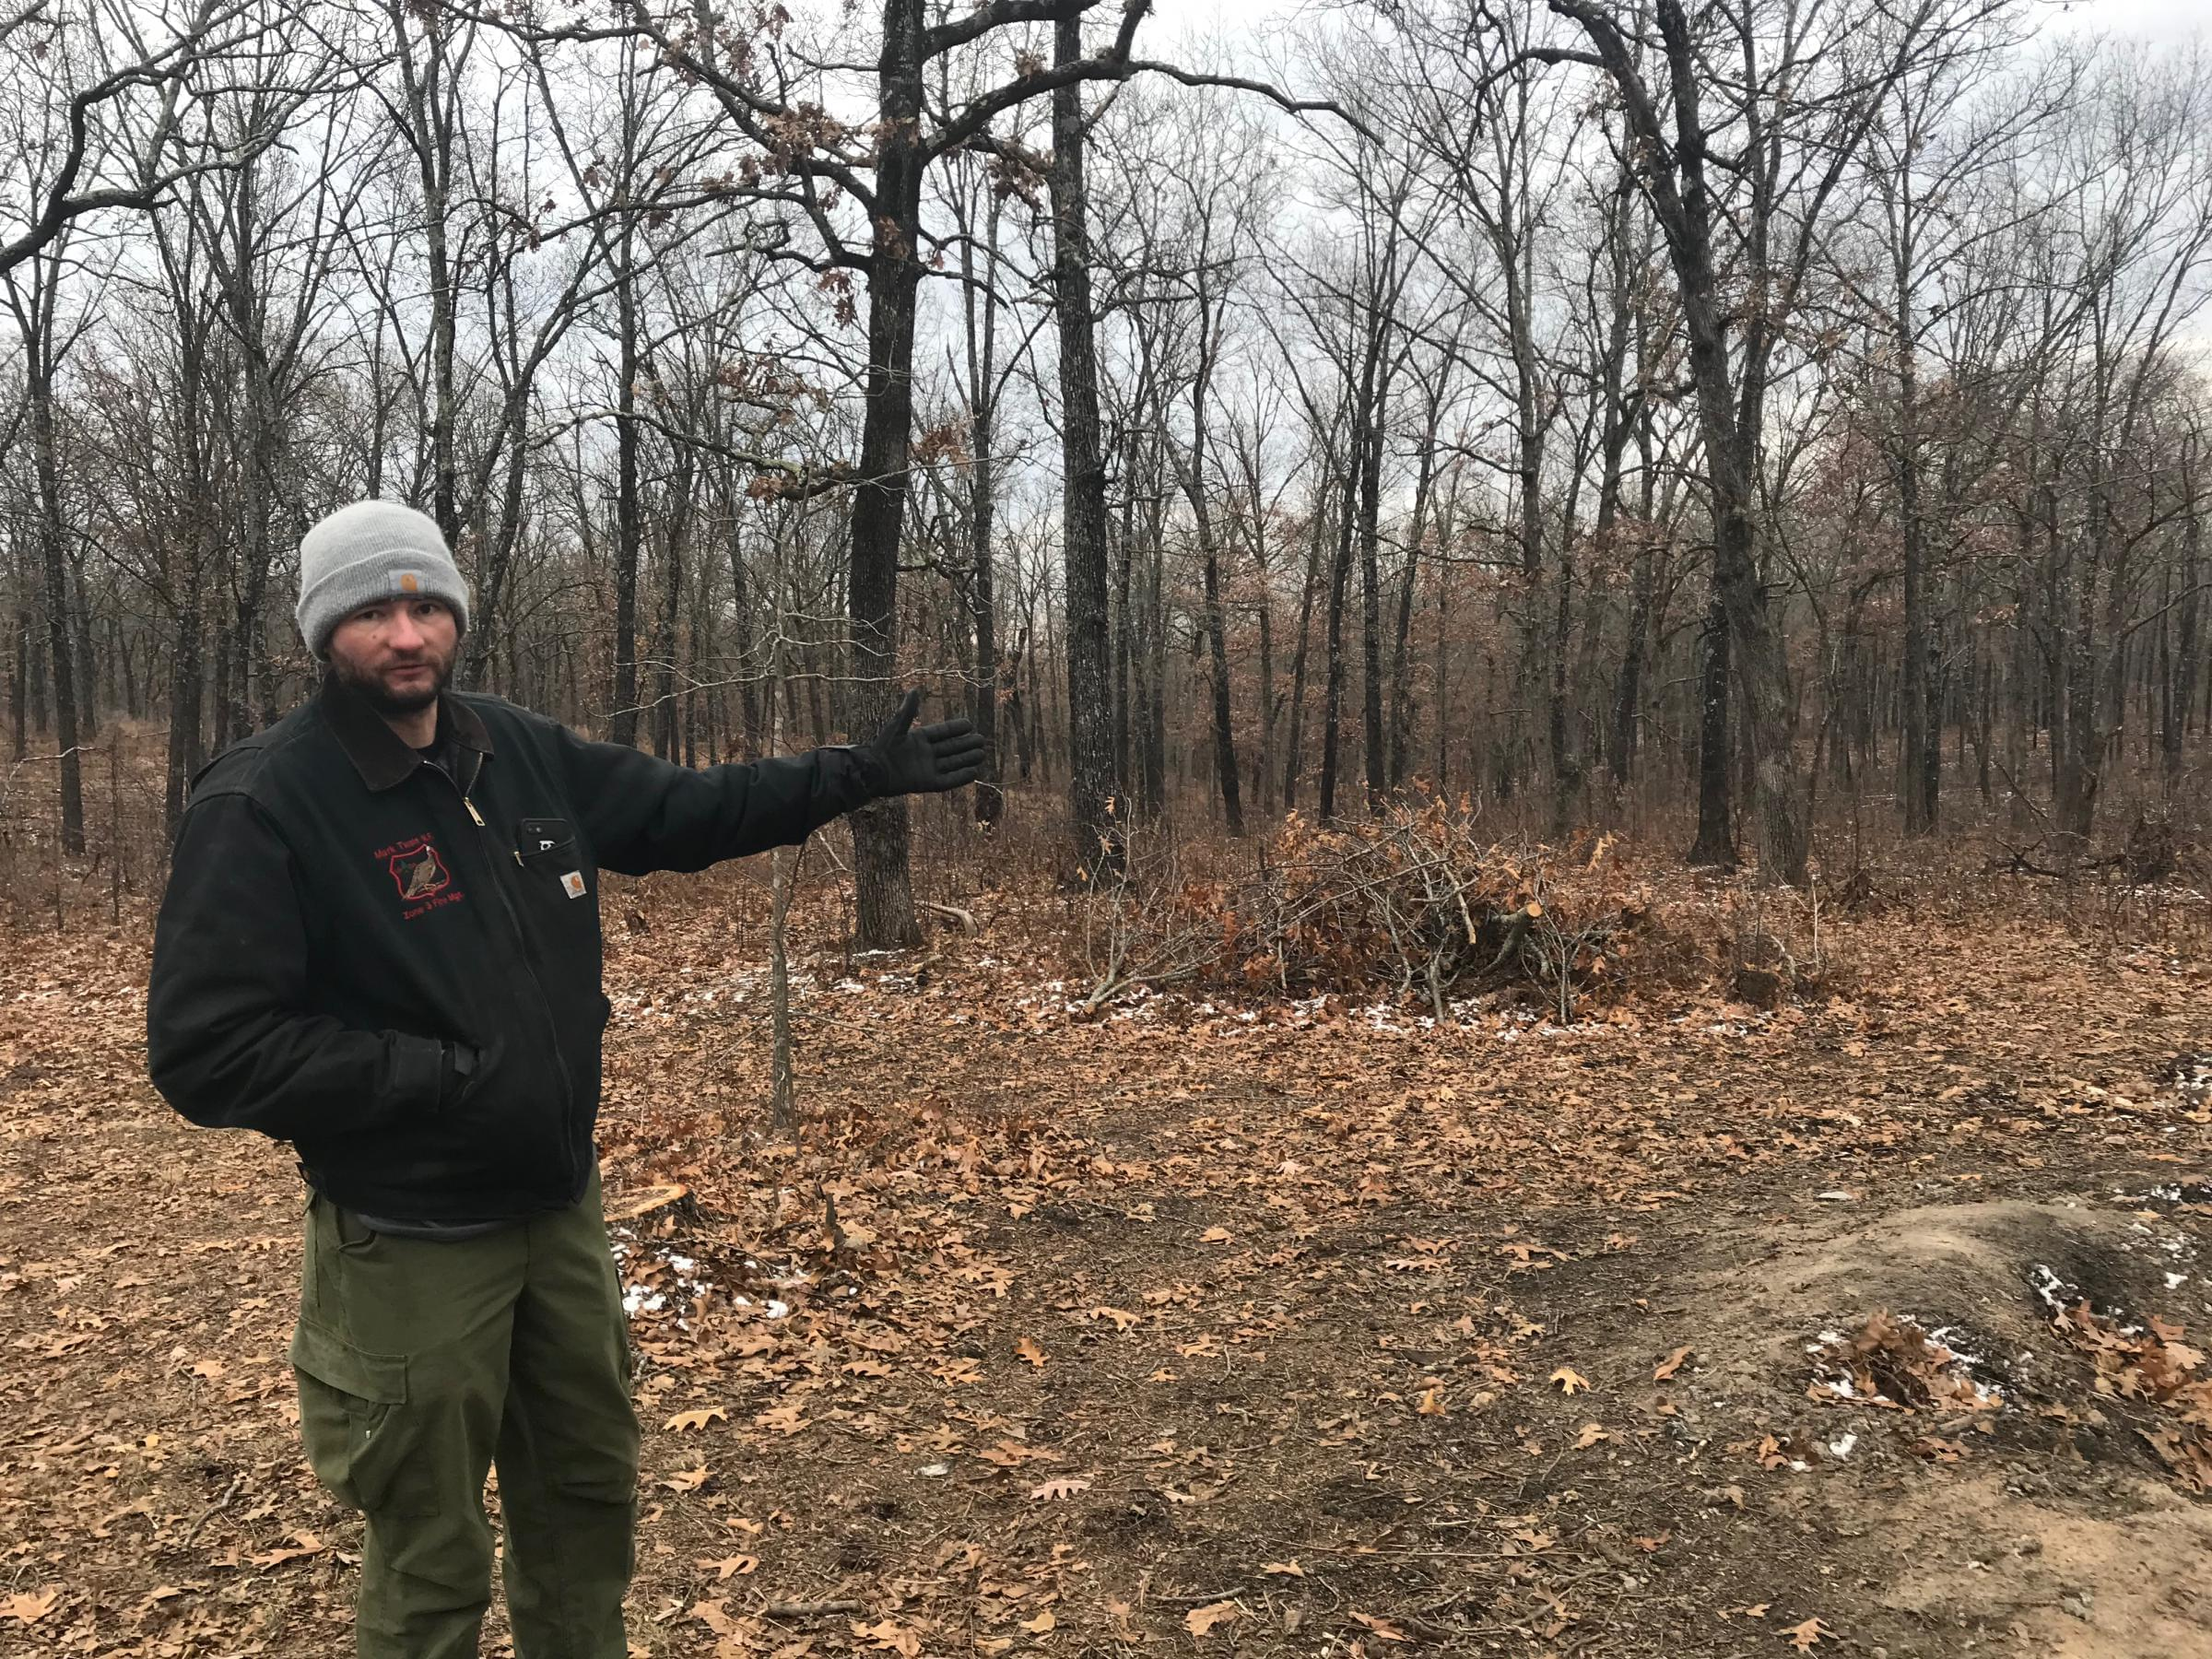 Mark Twain National Forest firefighter Mike Kelly points to a stand of trees in the process of being thinned out to help prevent wildfires.